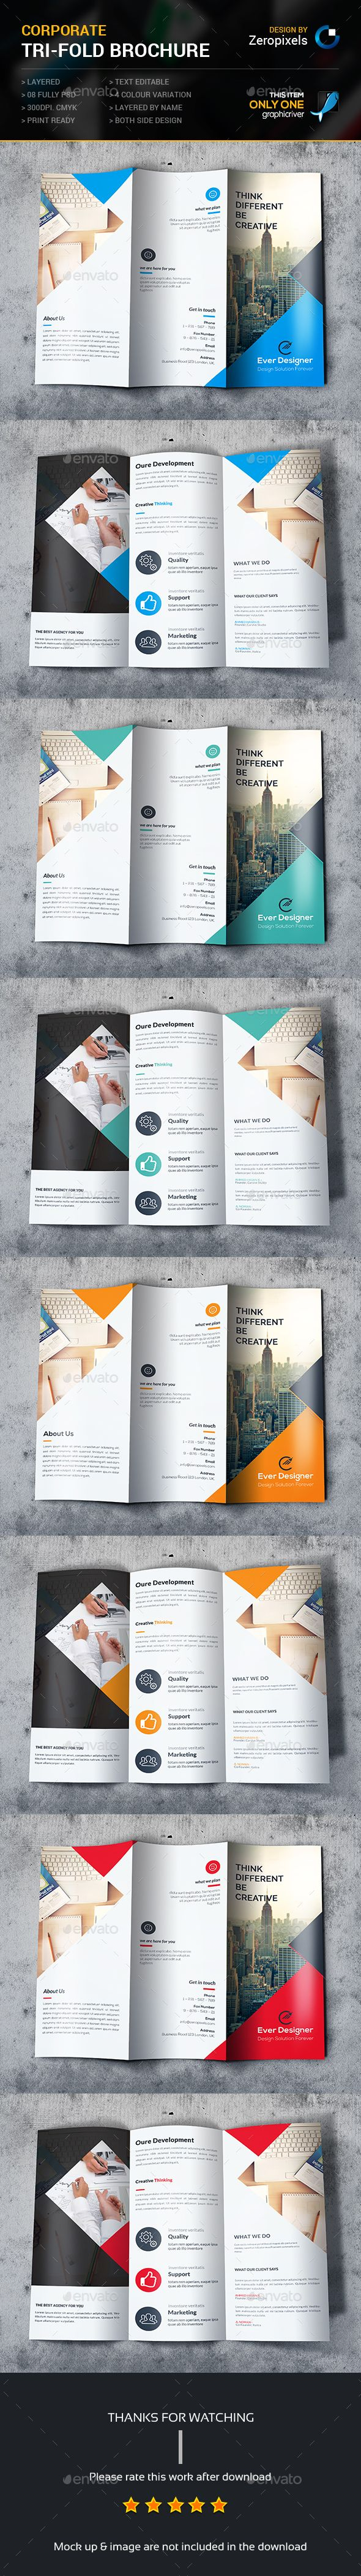 Tri-fold Brochure Template PSD. Download here: http://graphicriver.net/item/trifold-brochure/15277101?ref=ksioks